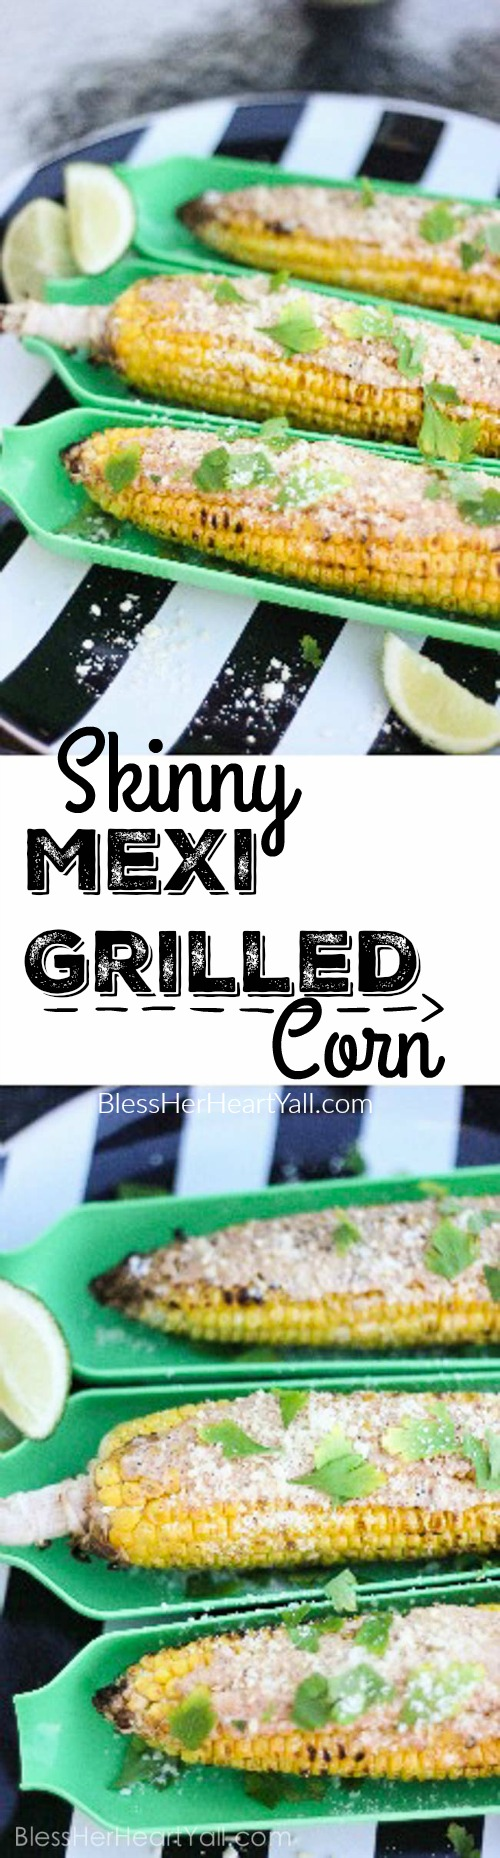 This skinny mexi grilled corn is amazing! Between the yummy spices and greek yogurt instead of fattening butter, this corn on the cob can't get any better! www.blessherheartyall.com